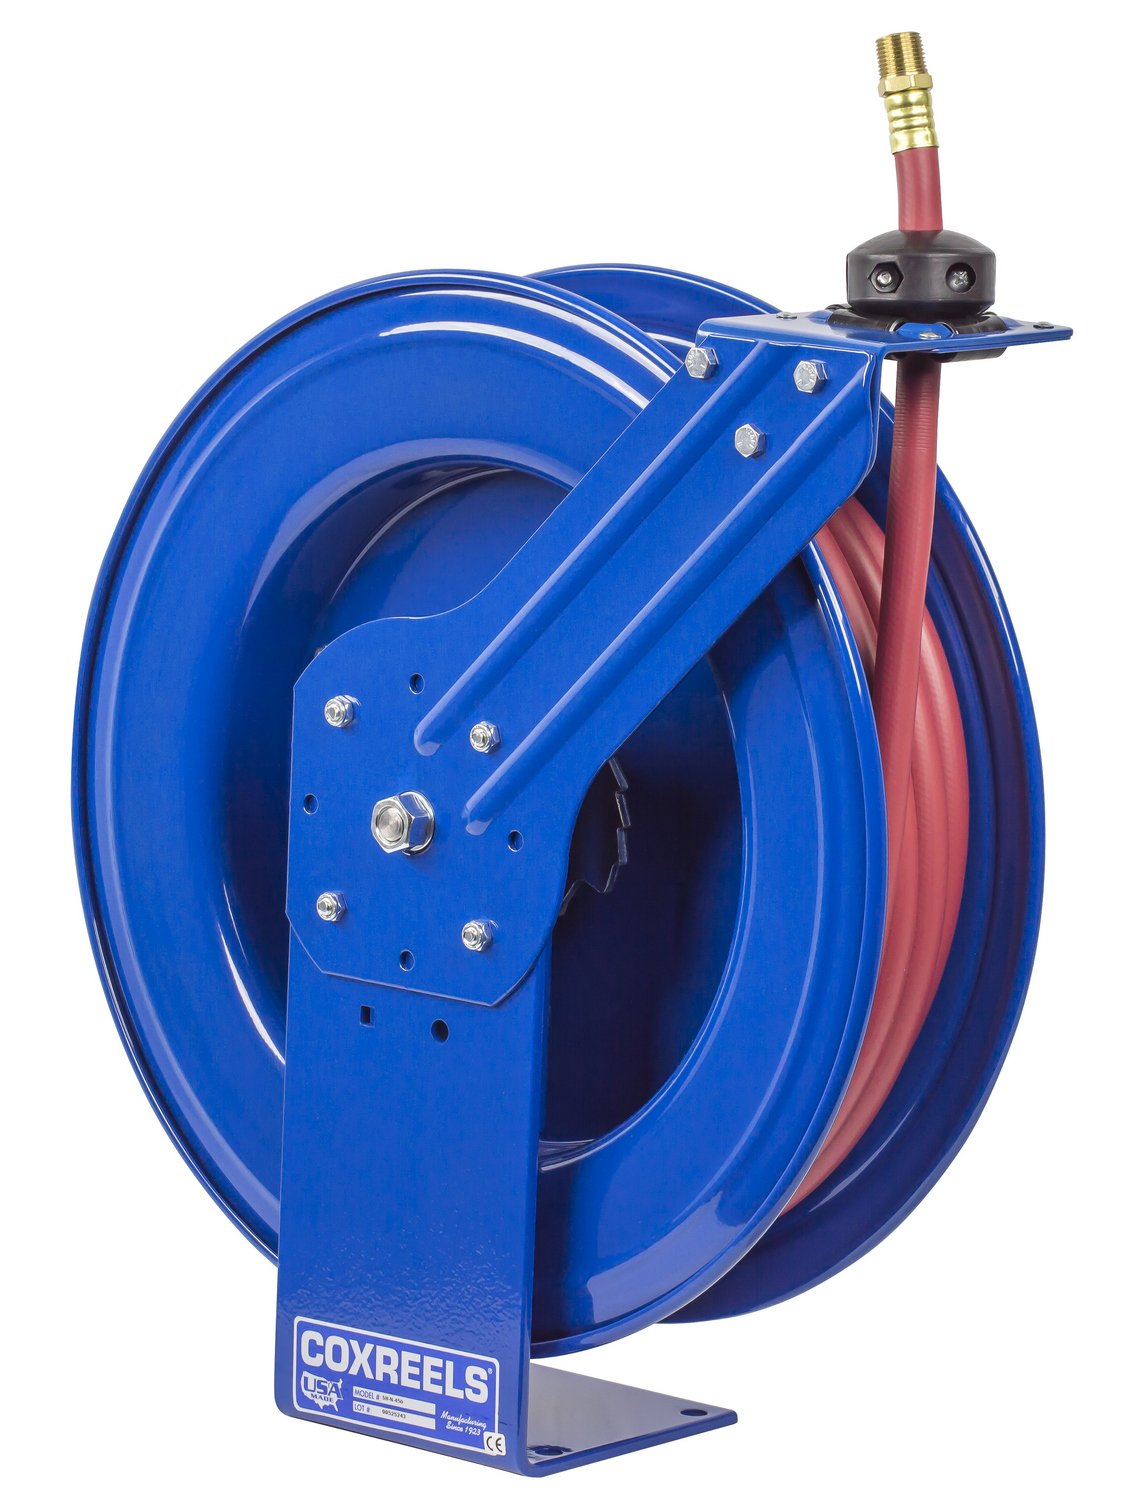 Coxreels SH-N-4100 Low Pressure Spring Rewind Hose Reel with Super Hub: 1/2'' I.D, 100' hose capacity, with hose, 300 PSI